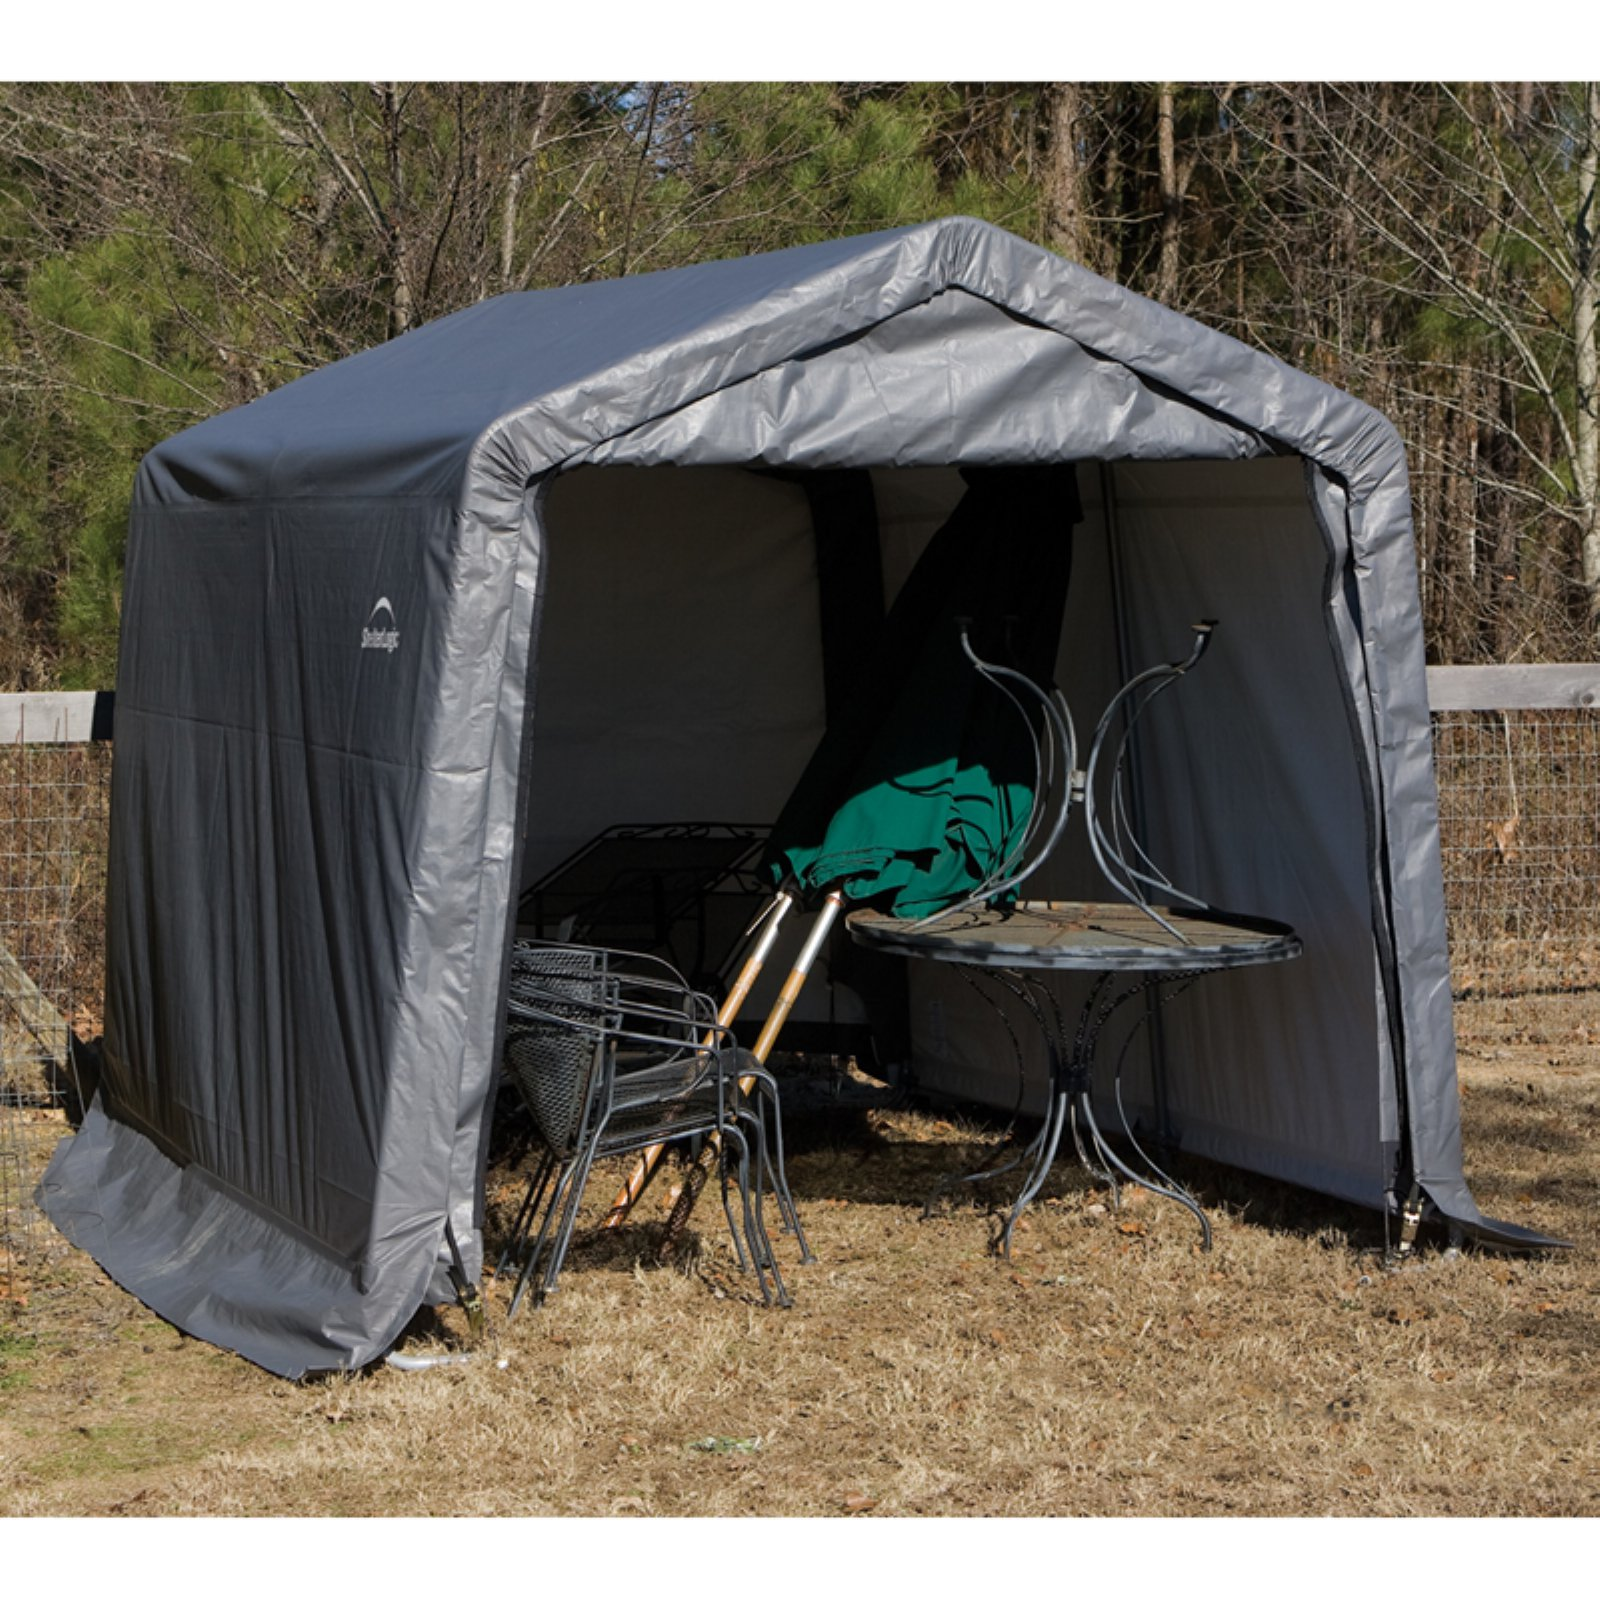 ShelterLogic 11' x 12' x 10' Peak Style Shelter, Gray